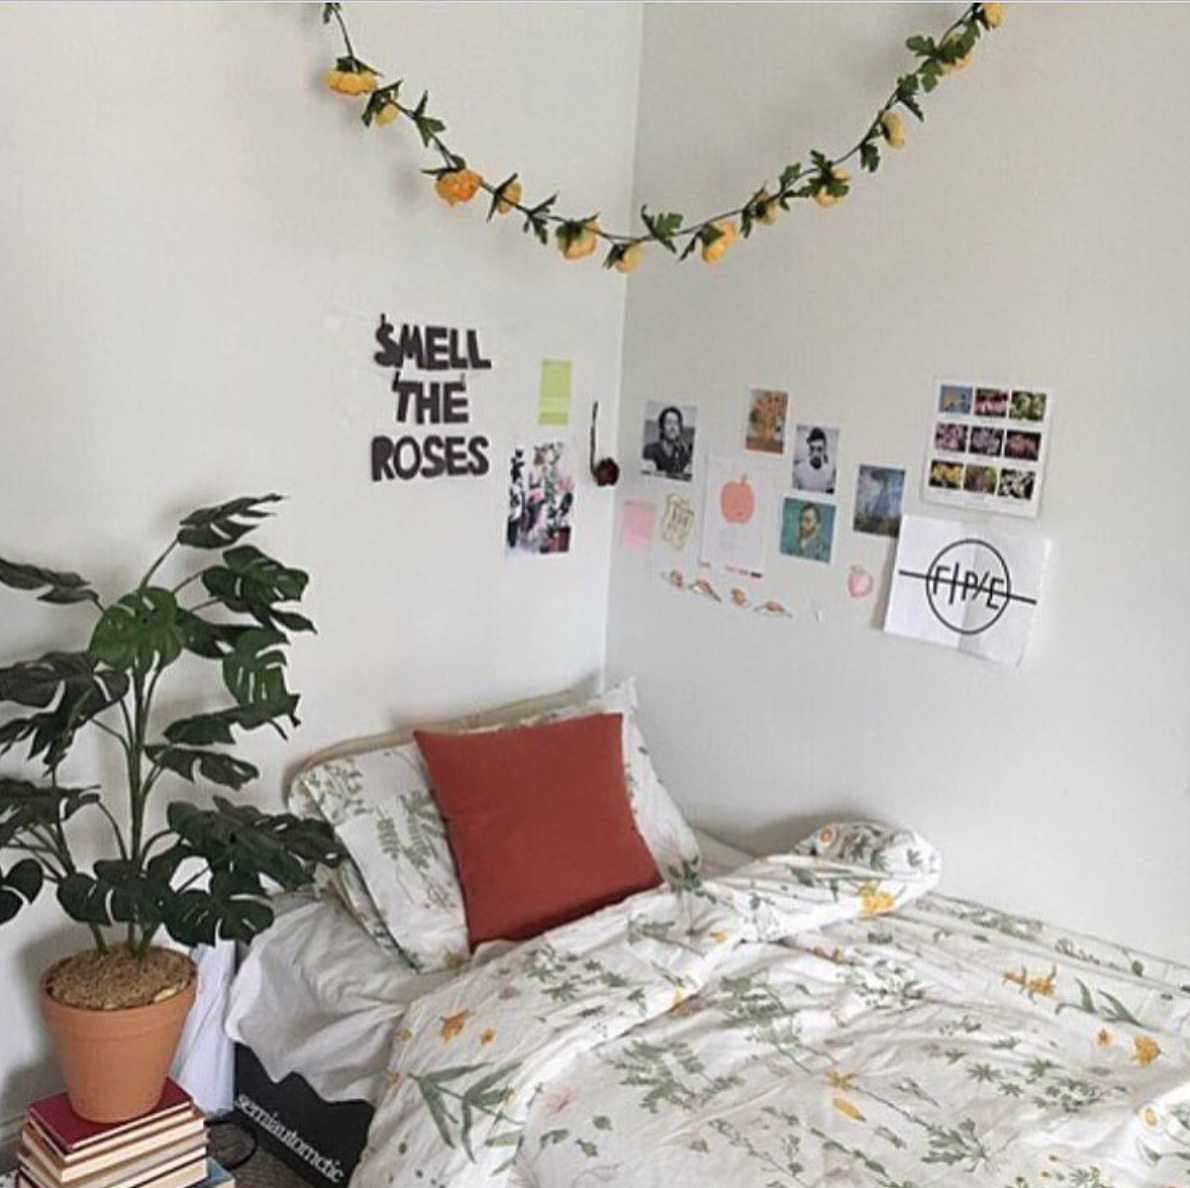 pinterest ella_cb in 2019 Aesthetic room decor, Room